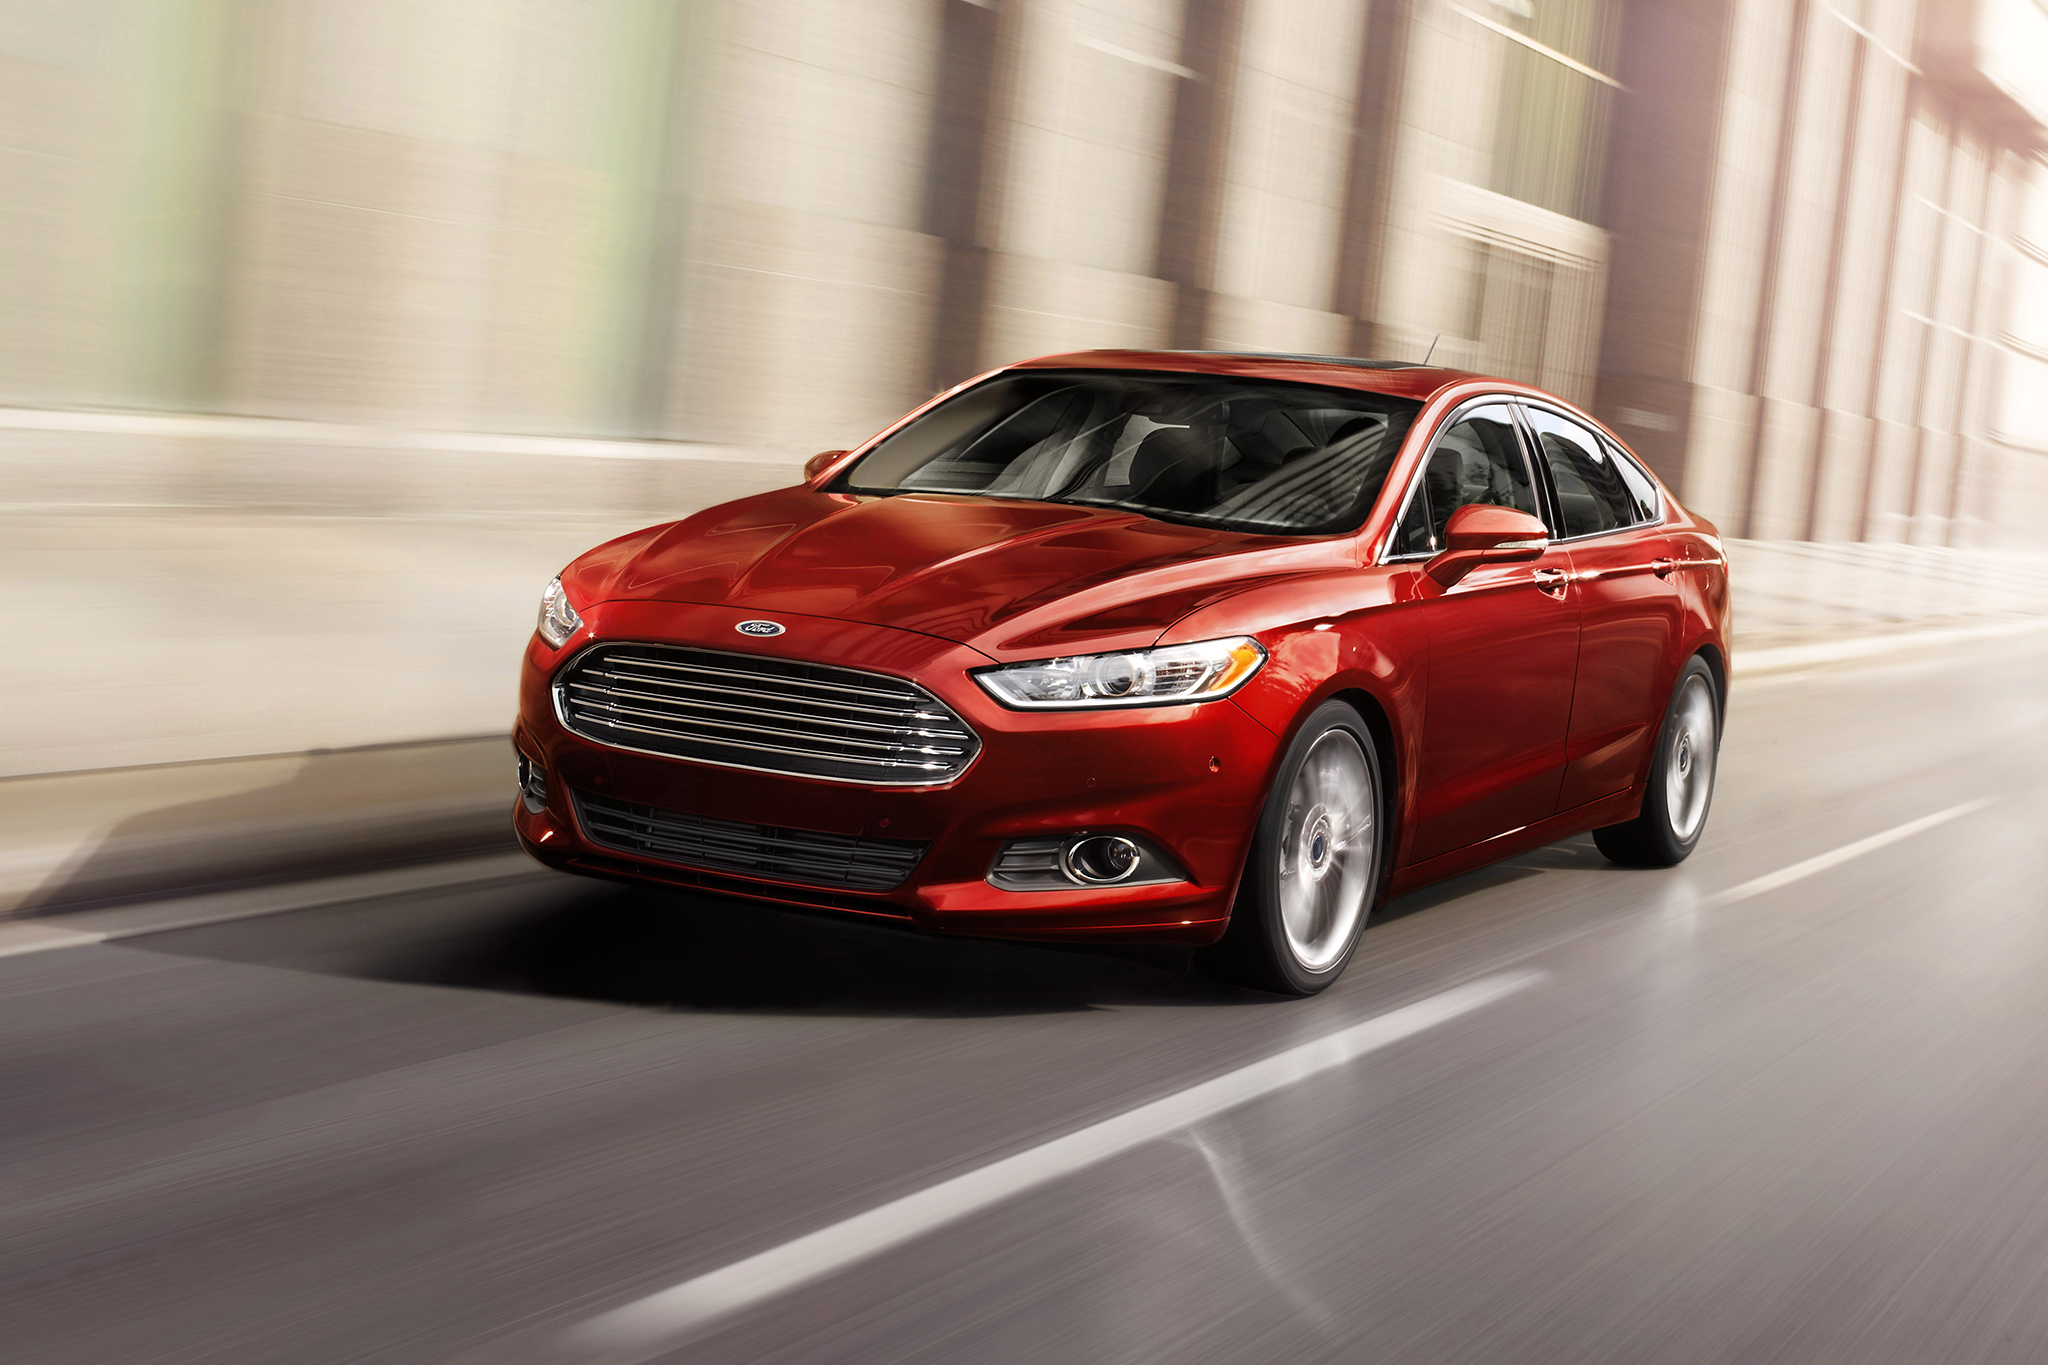 2015 ford fusion loses 1 6 ecoboost and manual option motor trend rh motortrend com 2014 ford fusion hybrid titanium owners manual 2013 ford fusion titanium manual